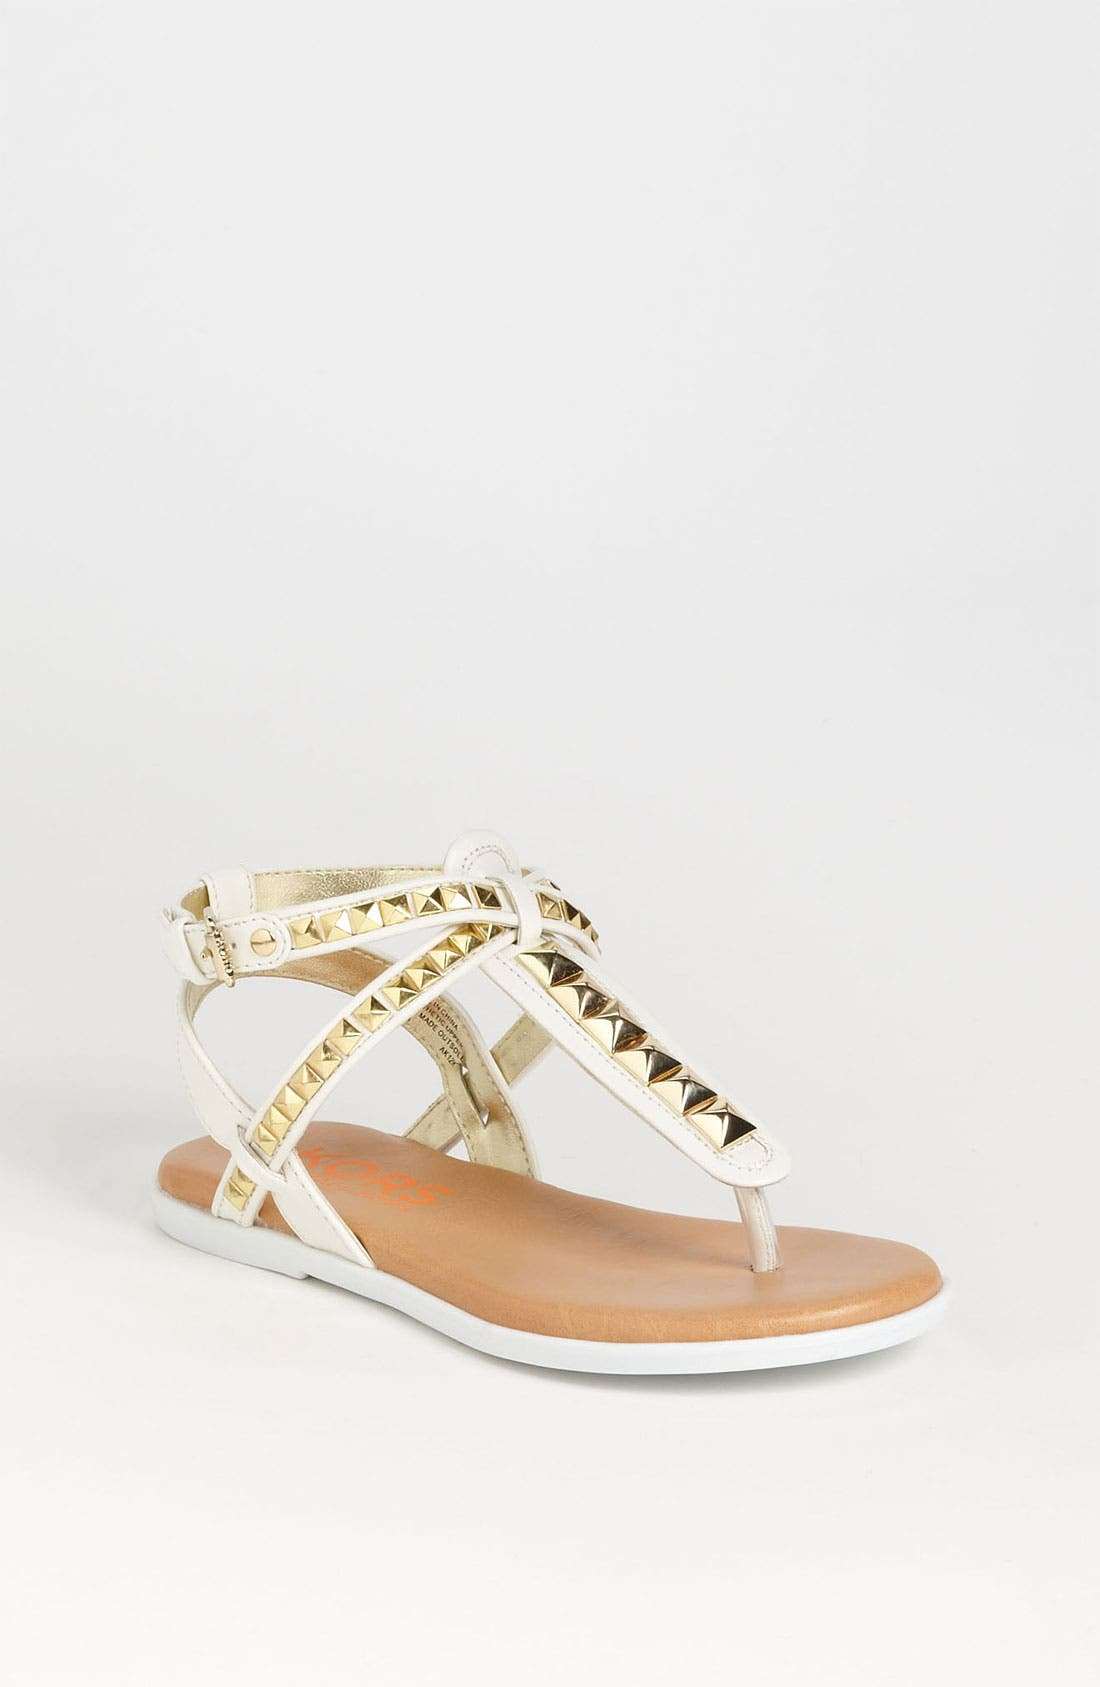 Main Image - KORS Michael Kors 'Button' Sandal (Little Kid & Big Kid)